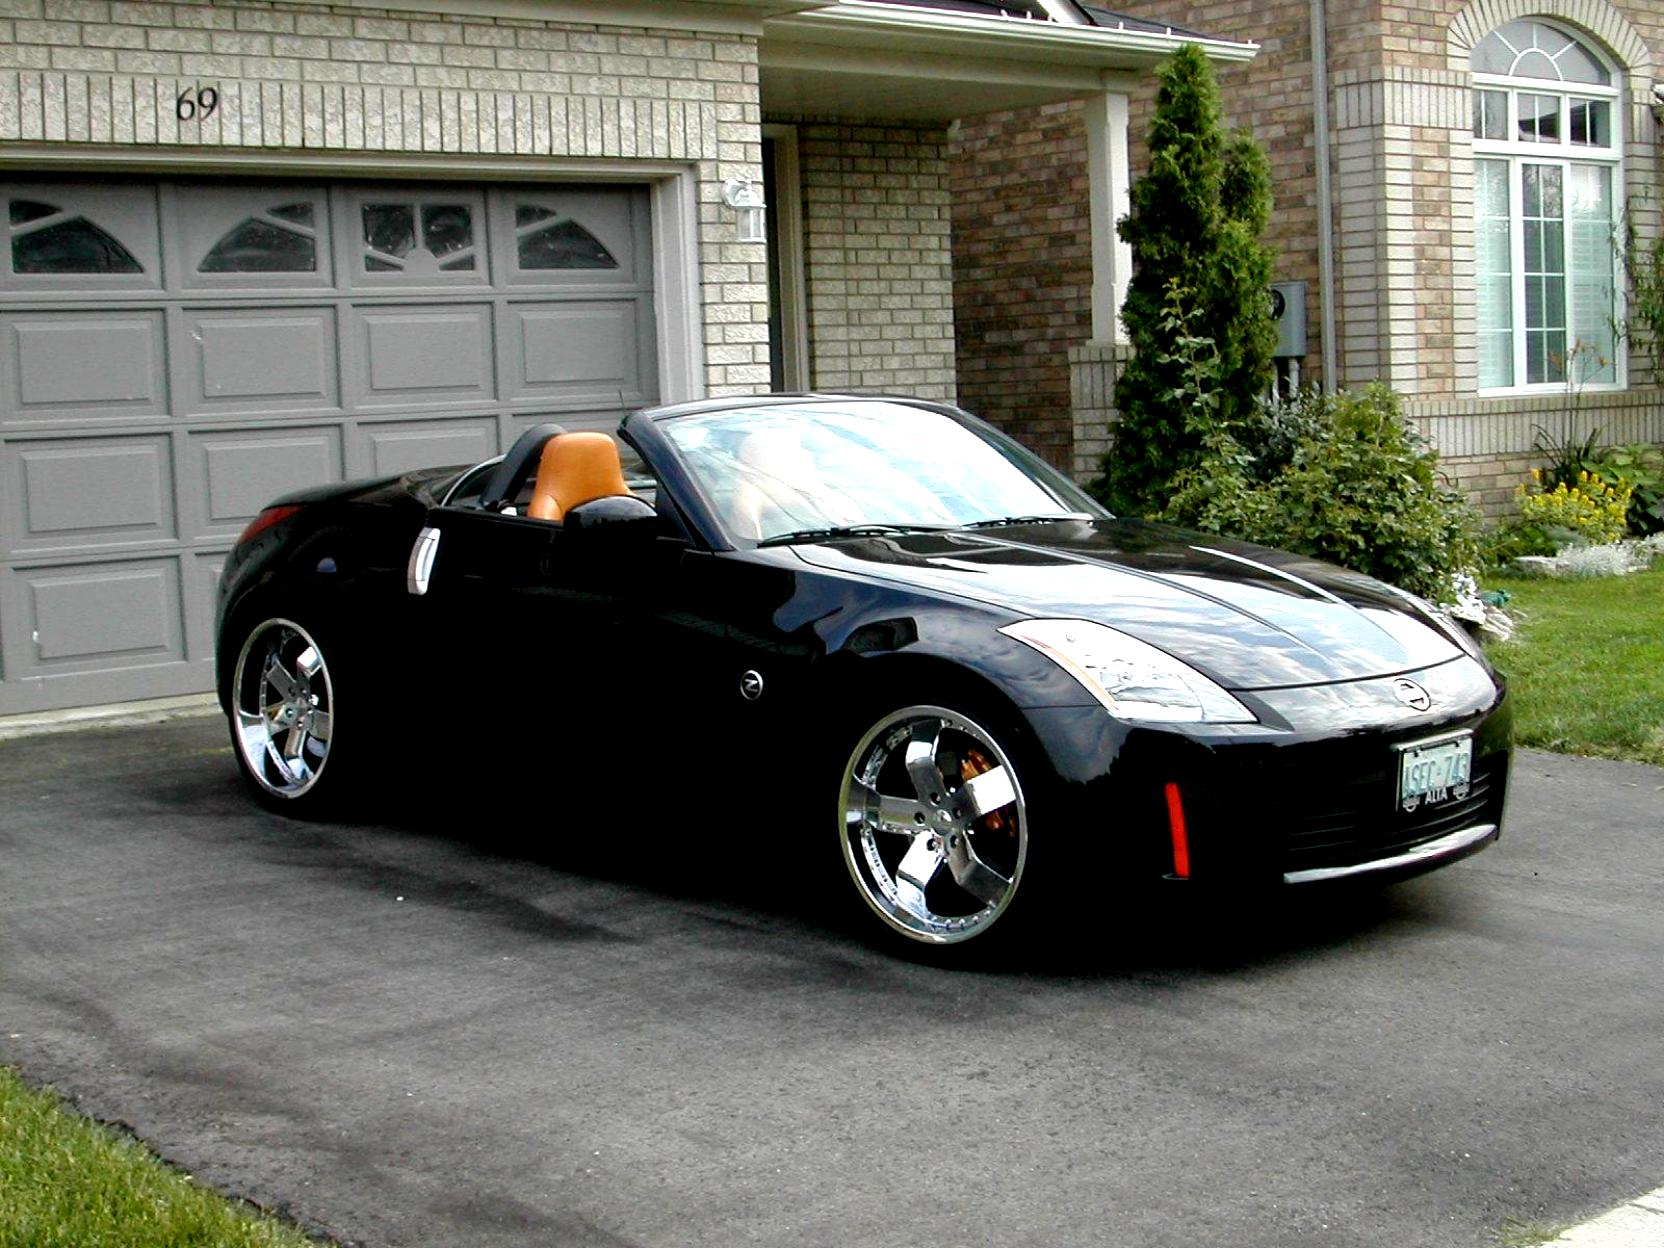 Nissan 350z Roadster 2005 On Motoimg Com